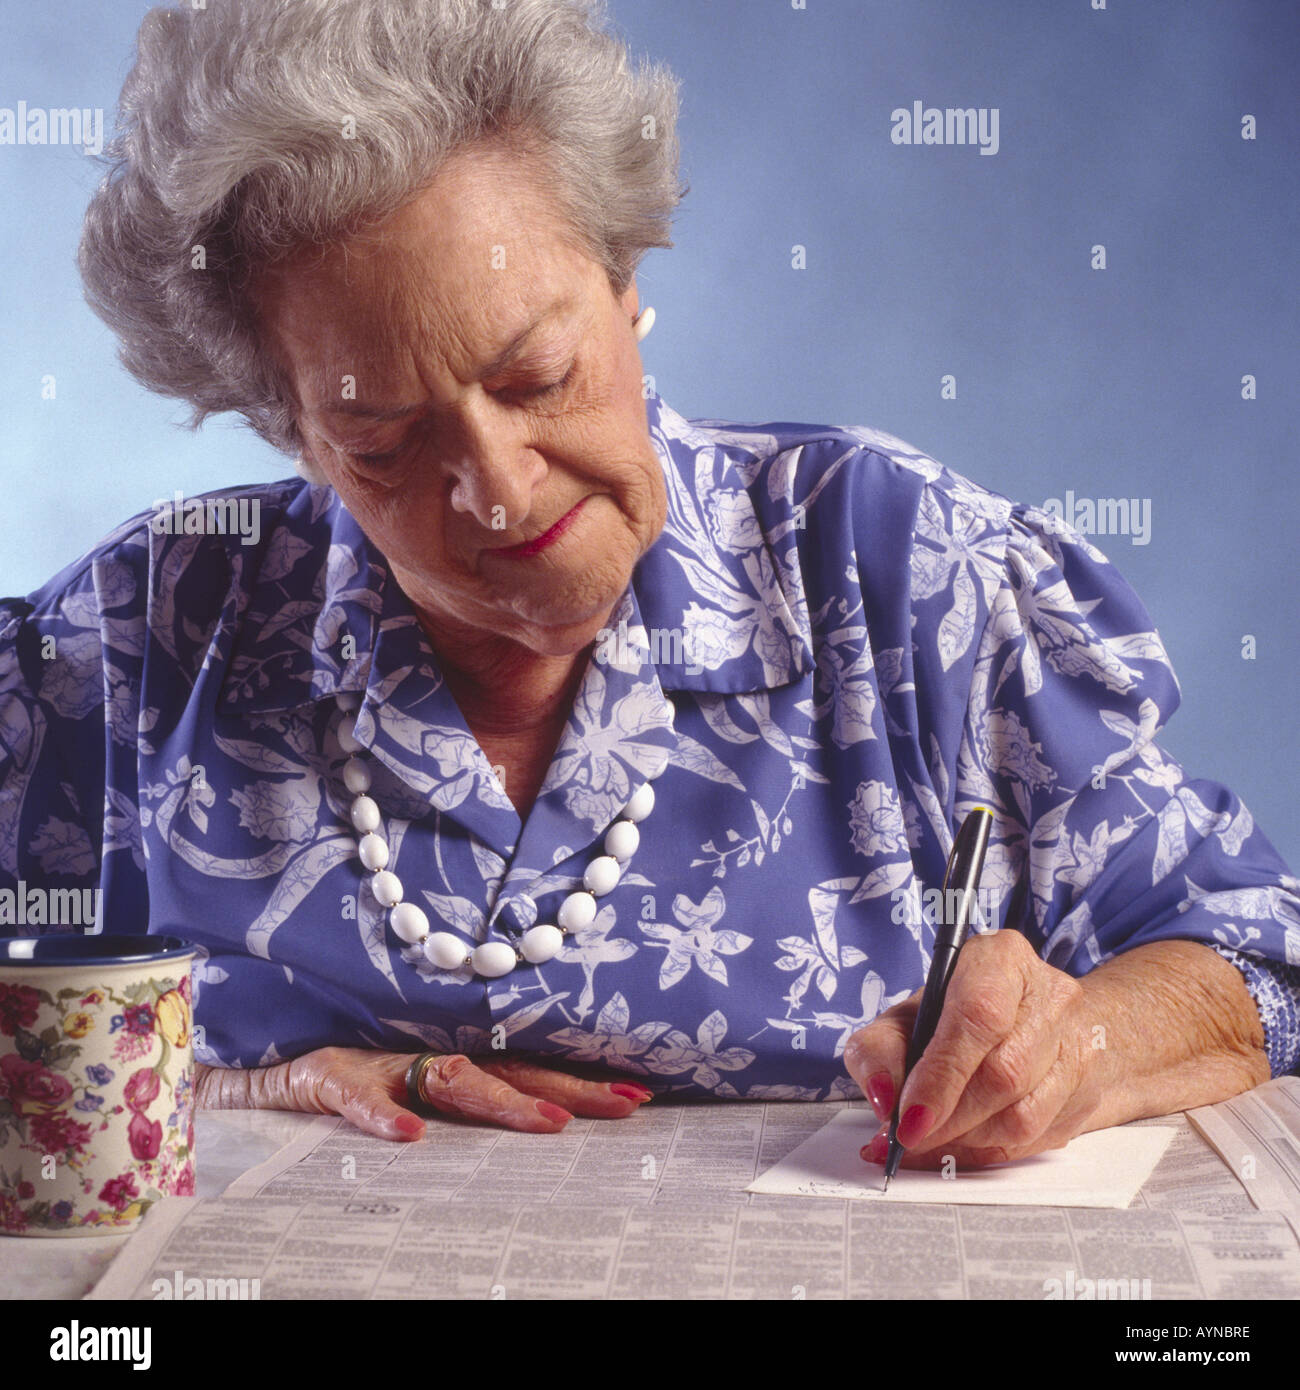 elderly woman with newspaper classified section seated at table taking notes - Stock Image